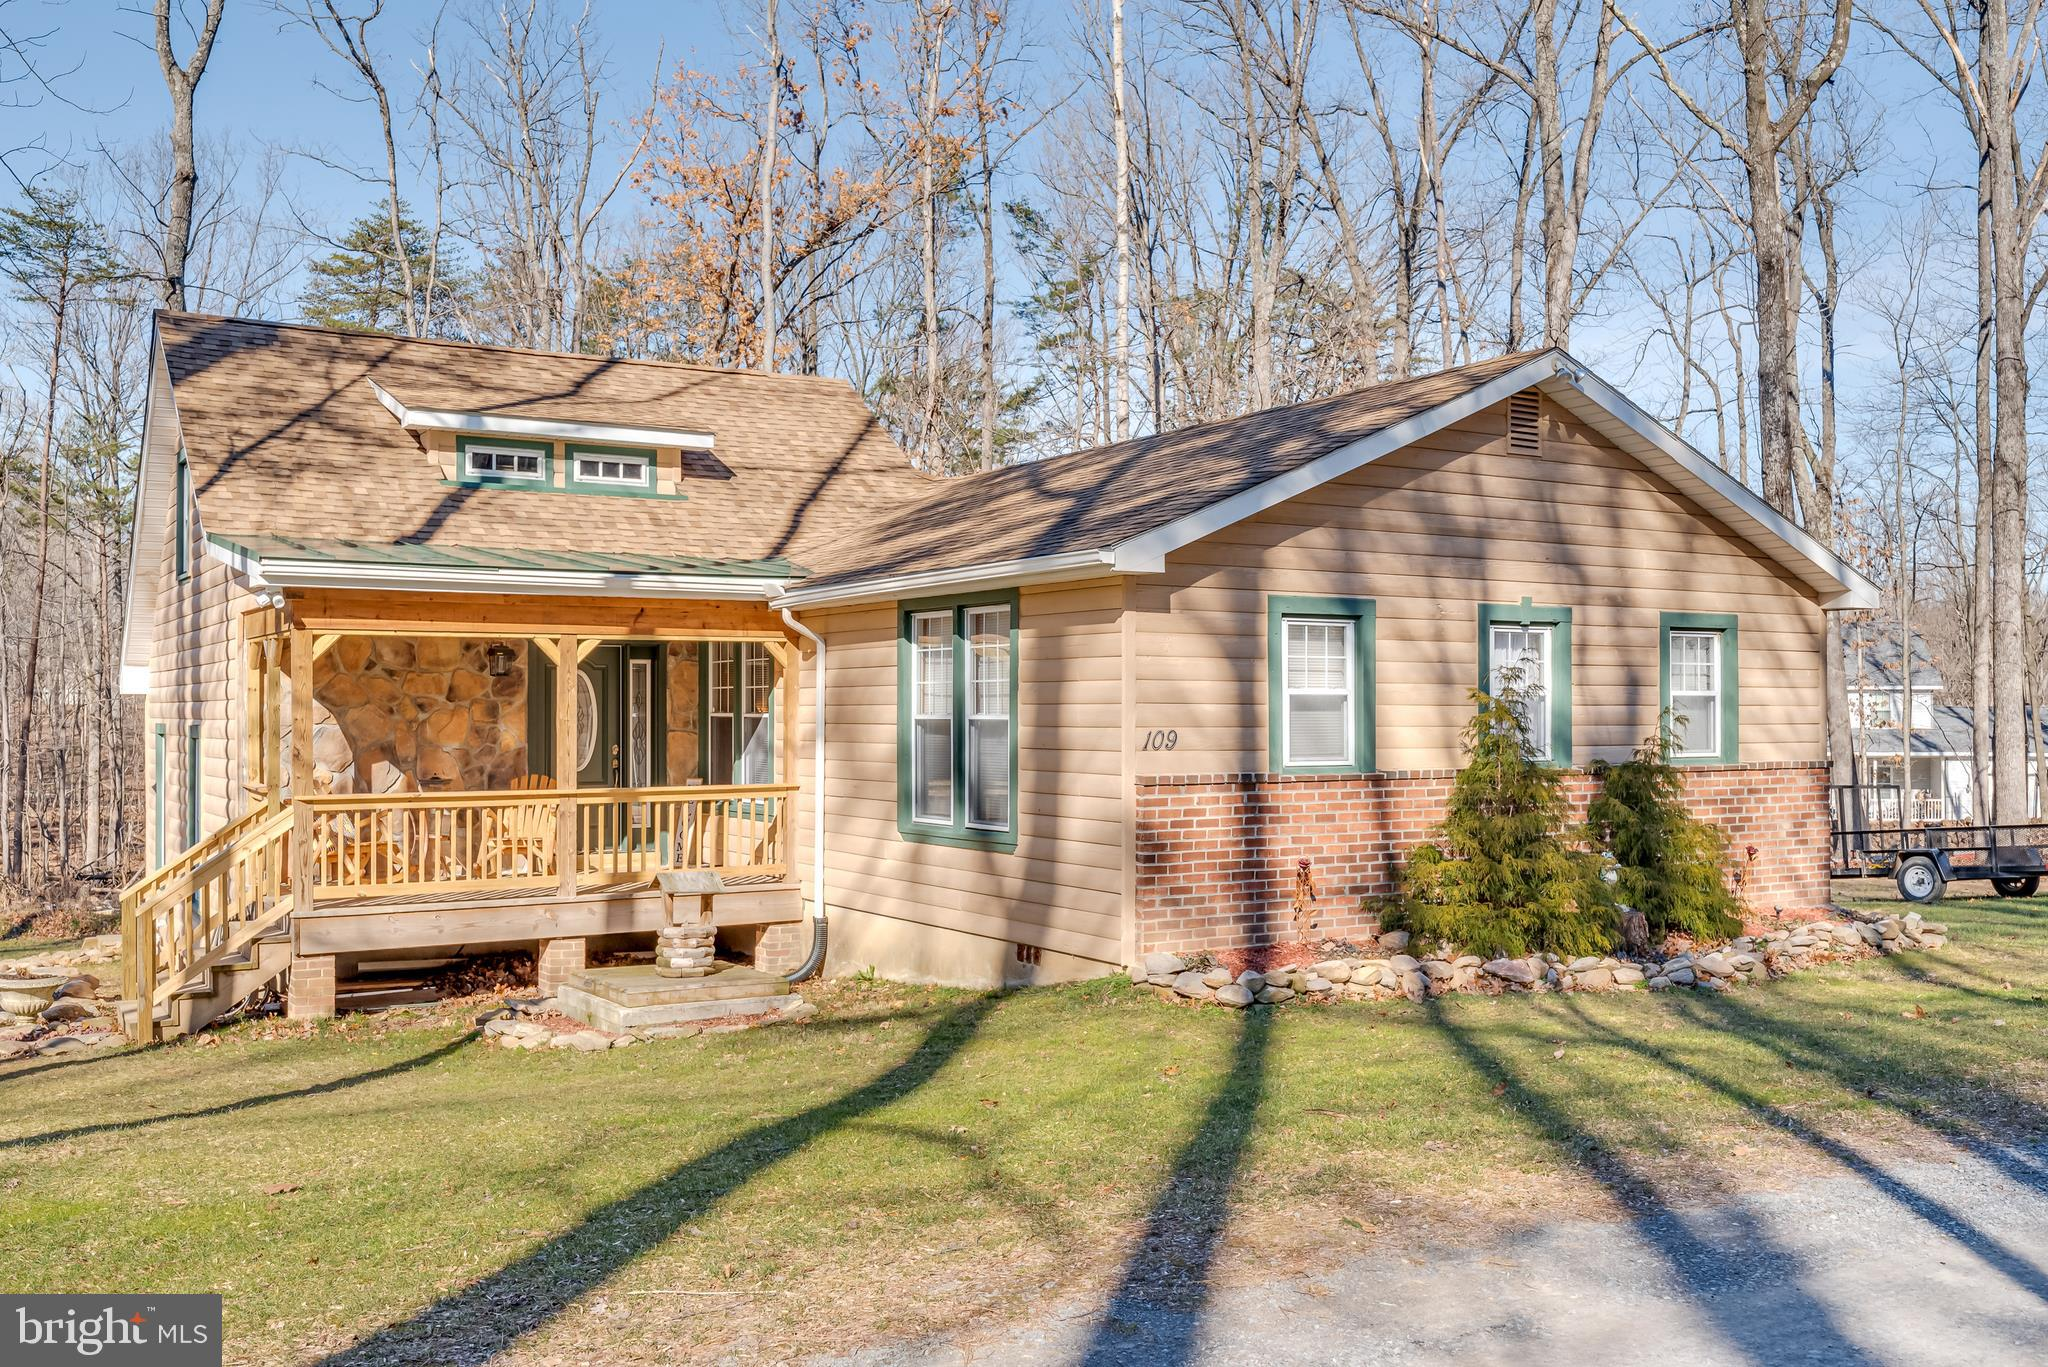 This stunning home sits on over 1 acre of wooded land. The main level features updated flooring. The